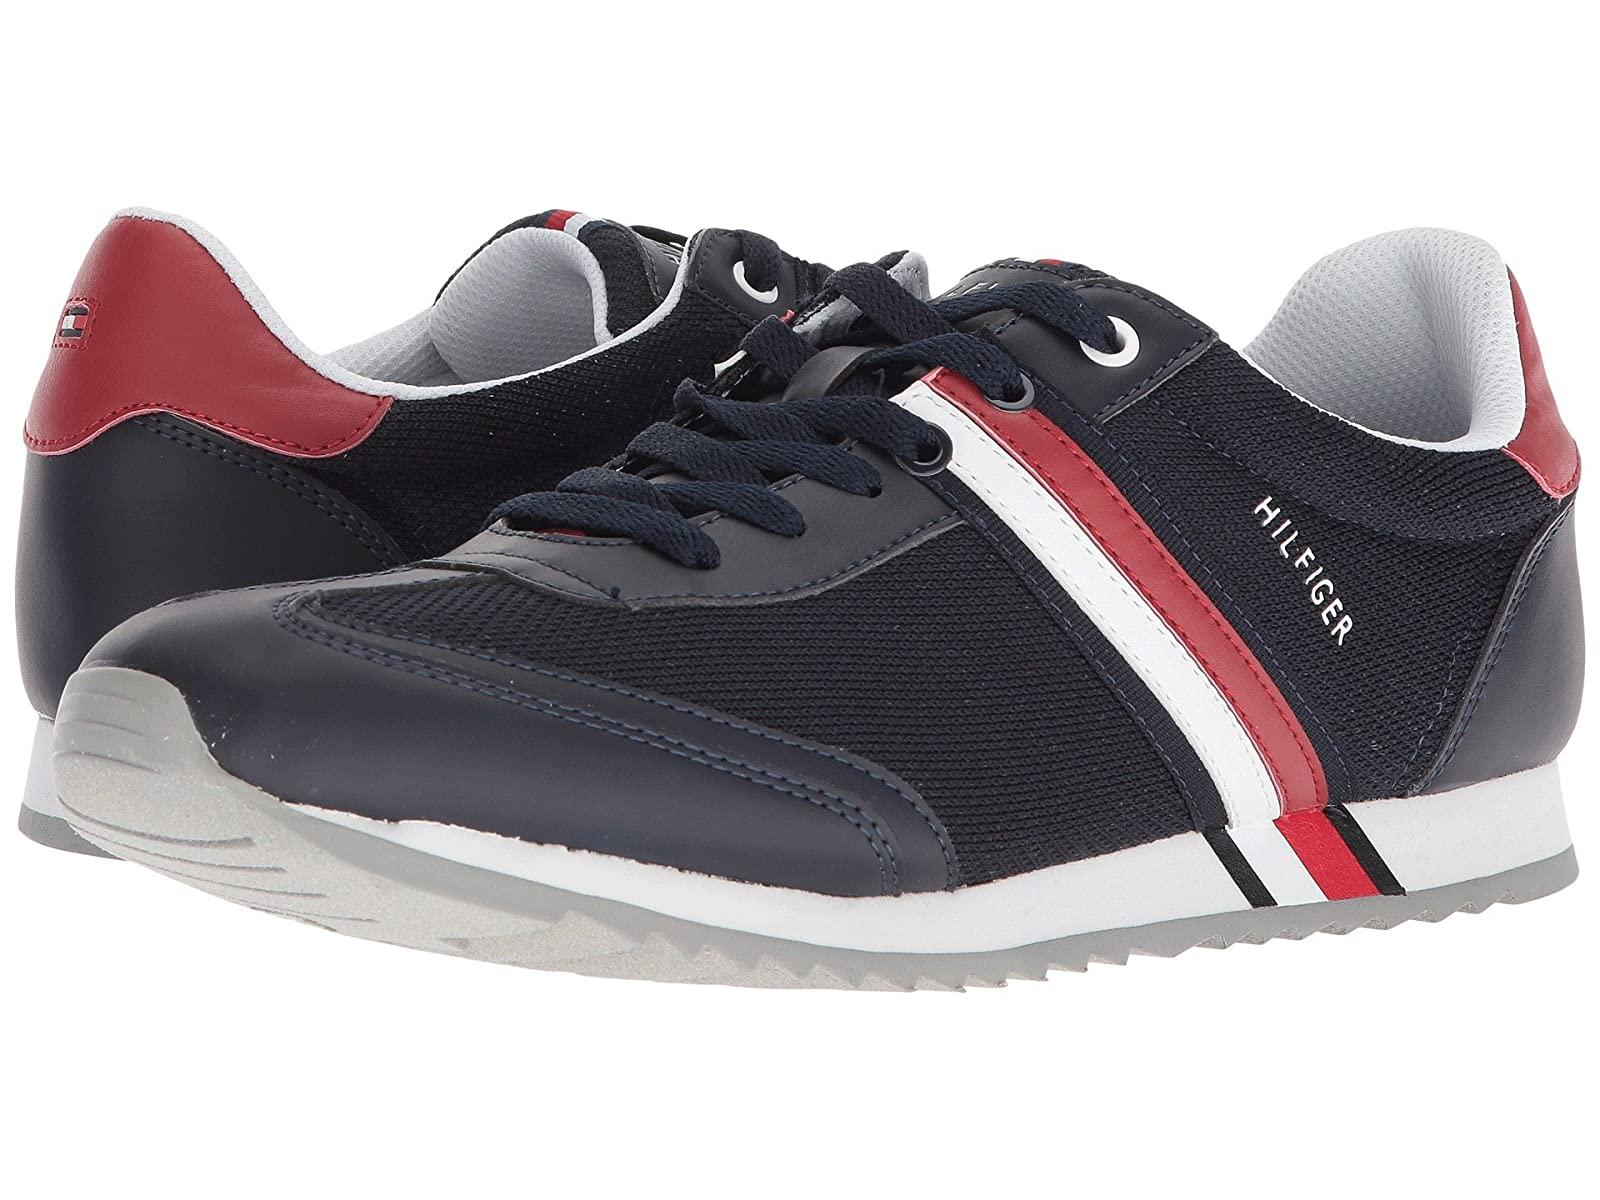 Tommy Hilfiger FellaCheap and distinctive eye-catching shoes